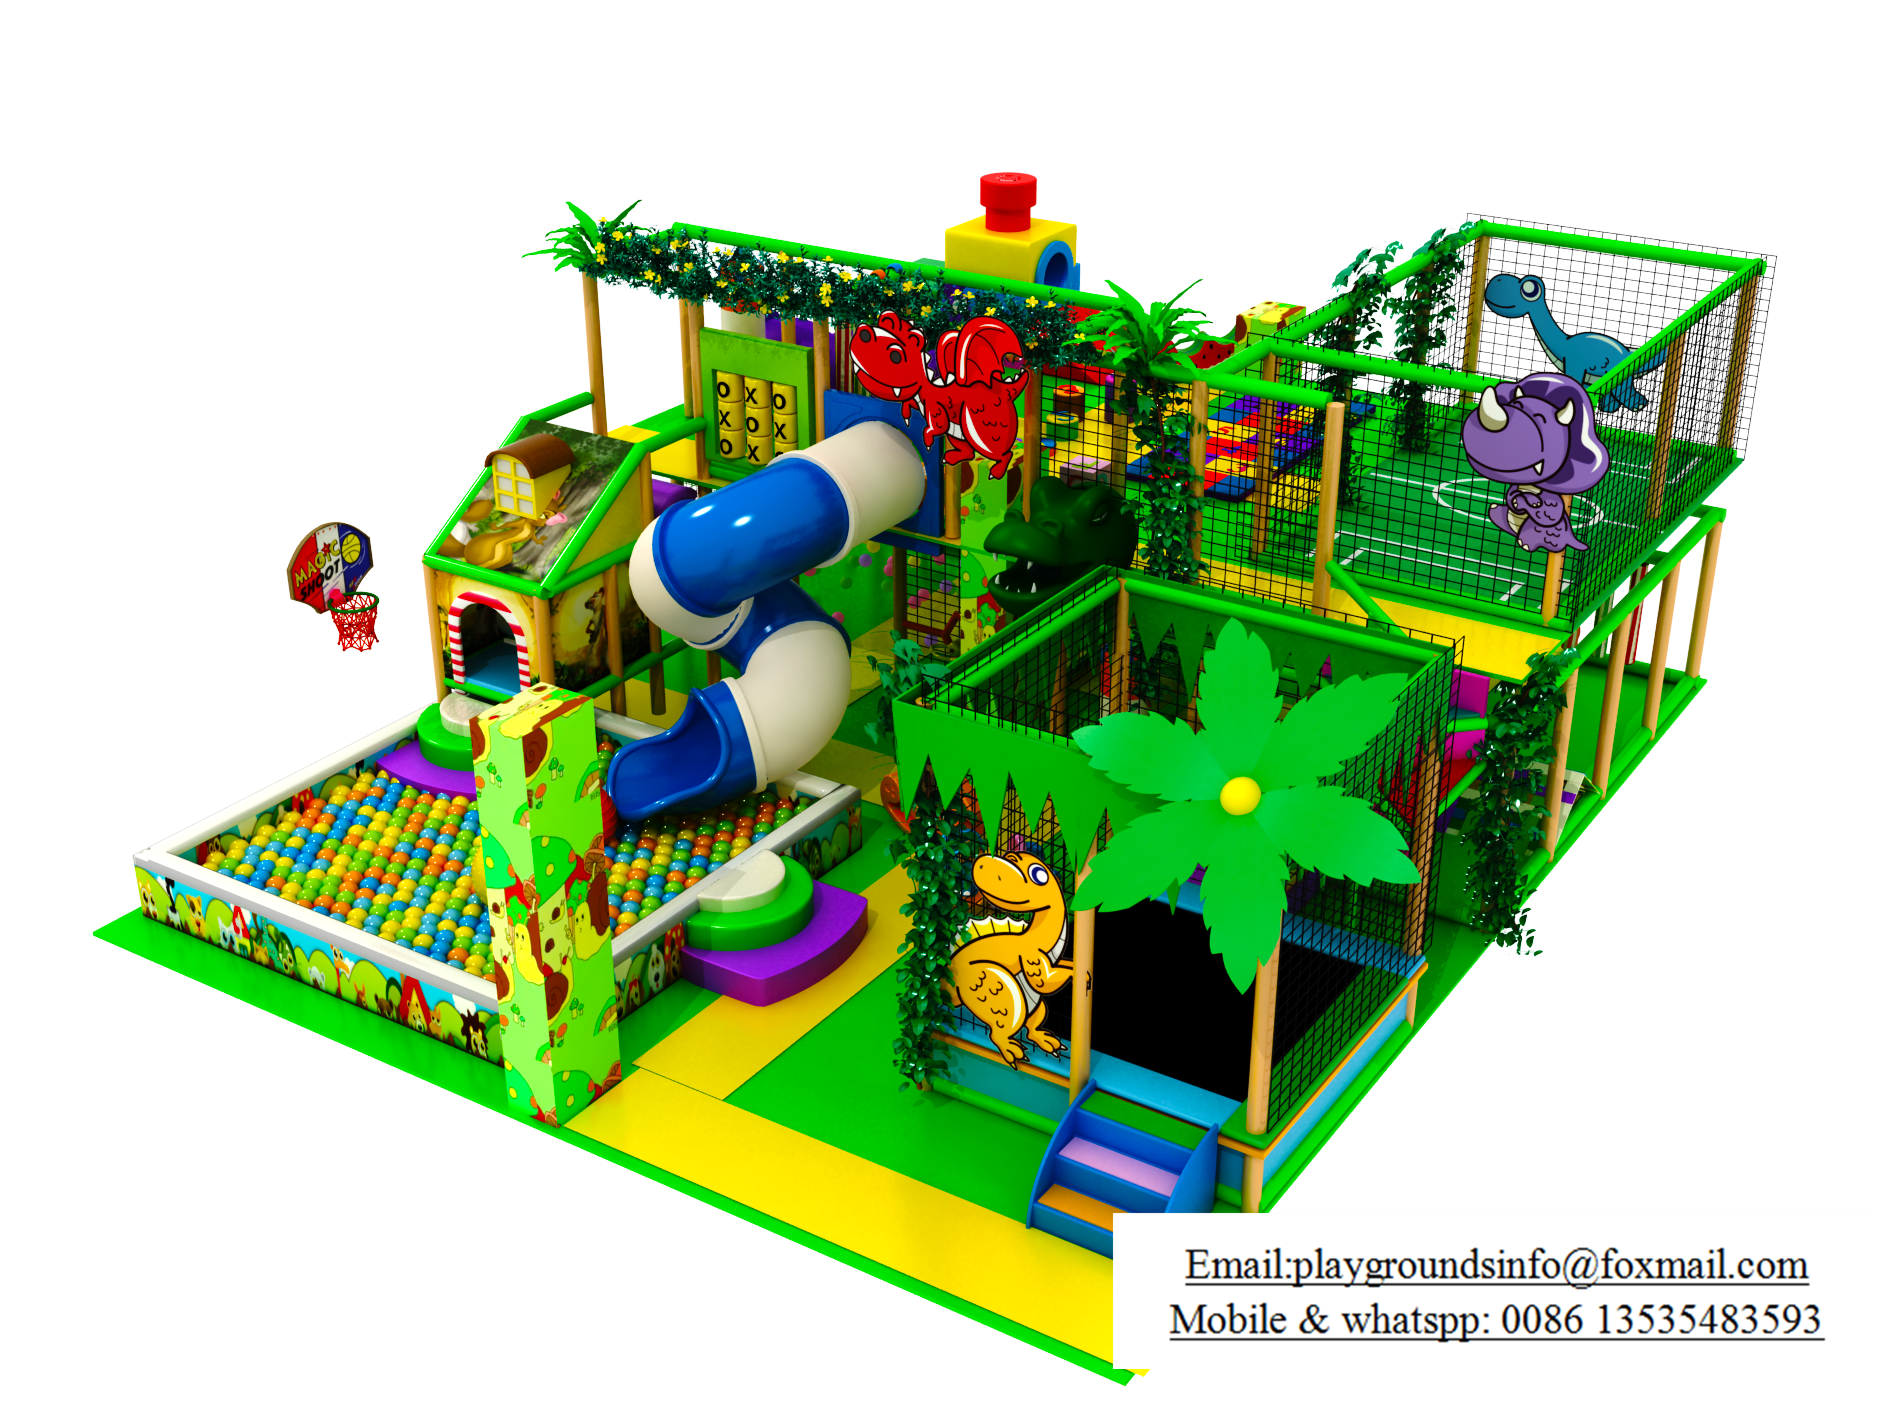 Playground in floor plan png. Customized for the indoor